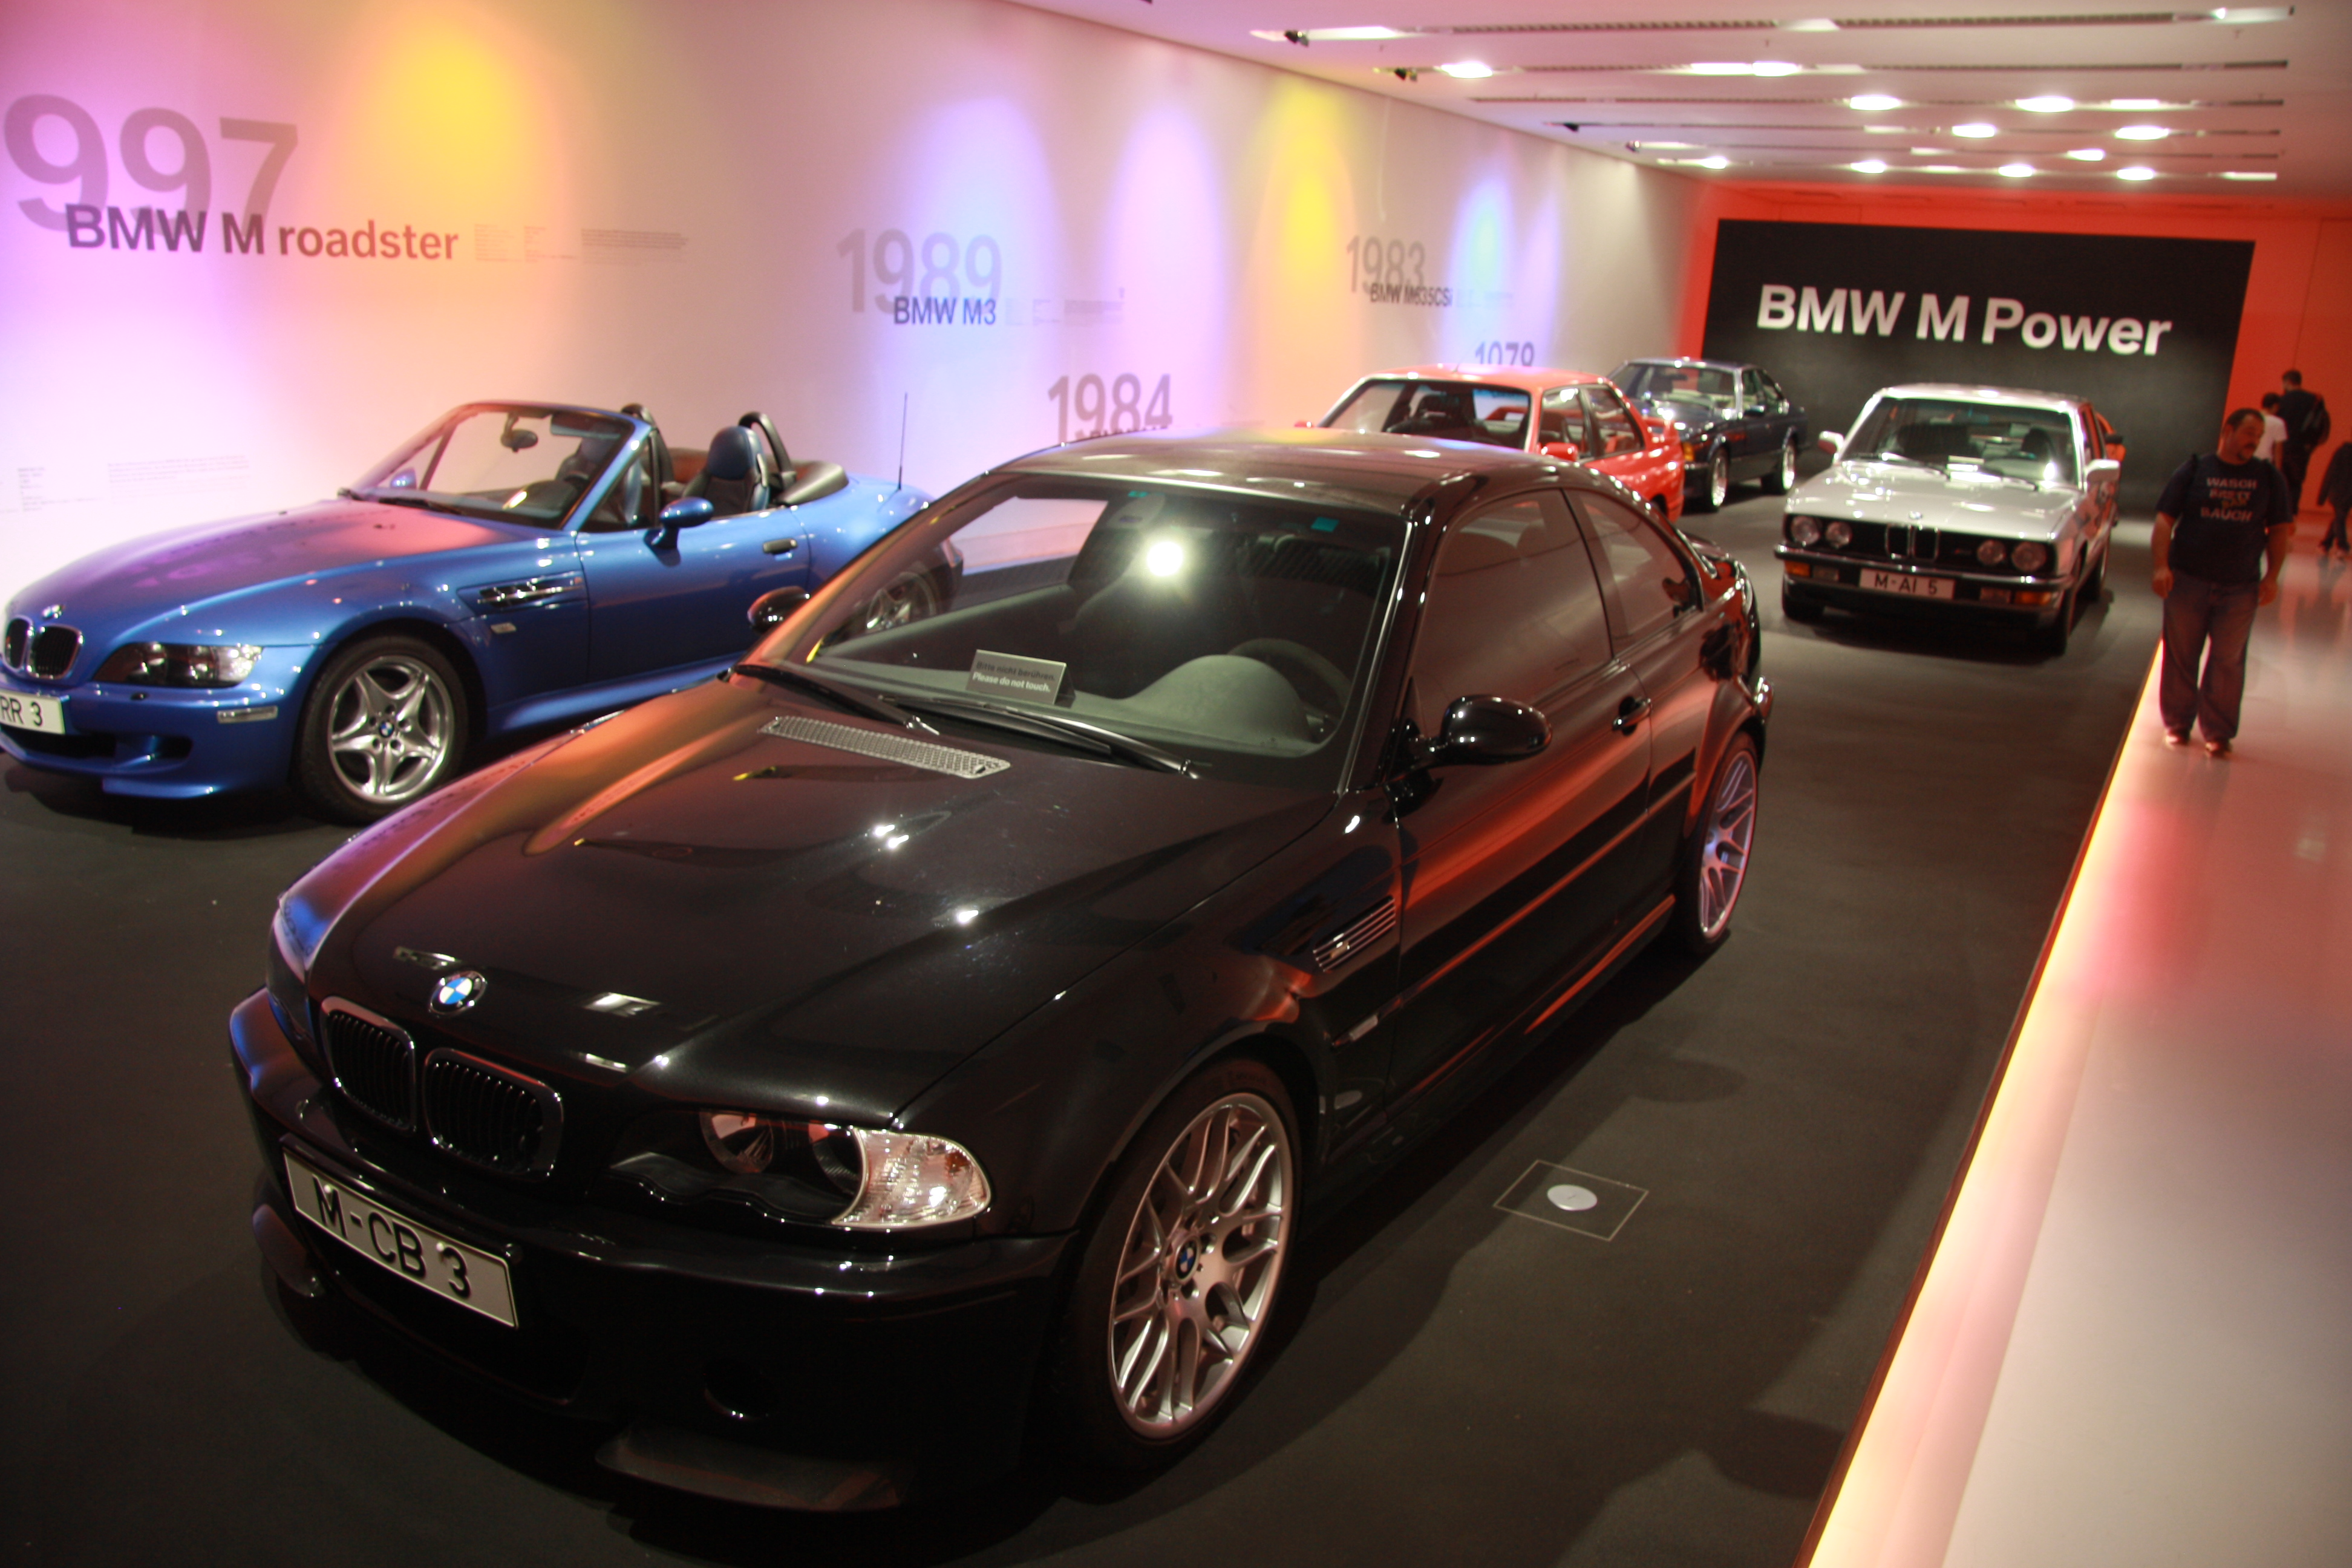 12- The BMW Museum